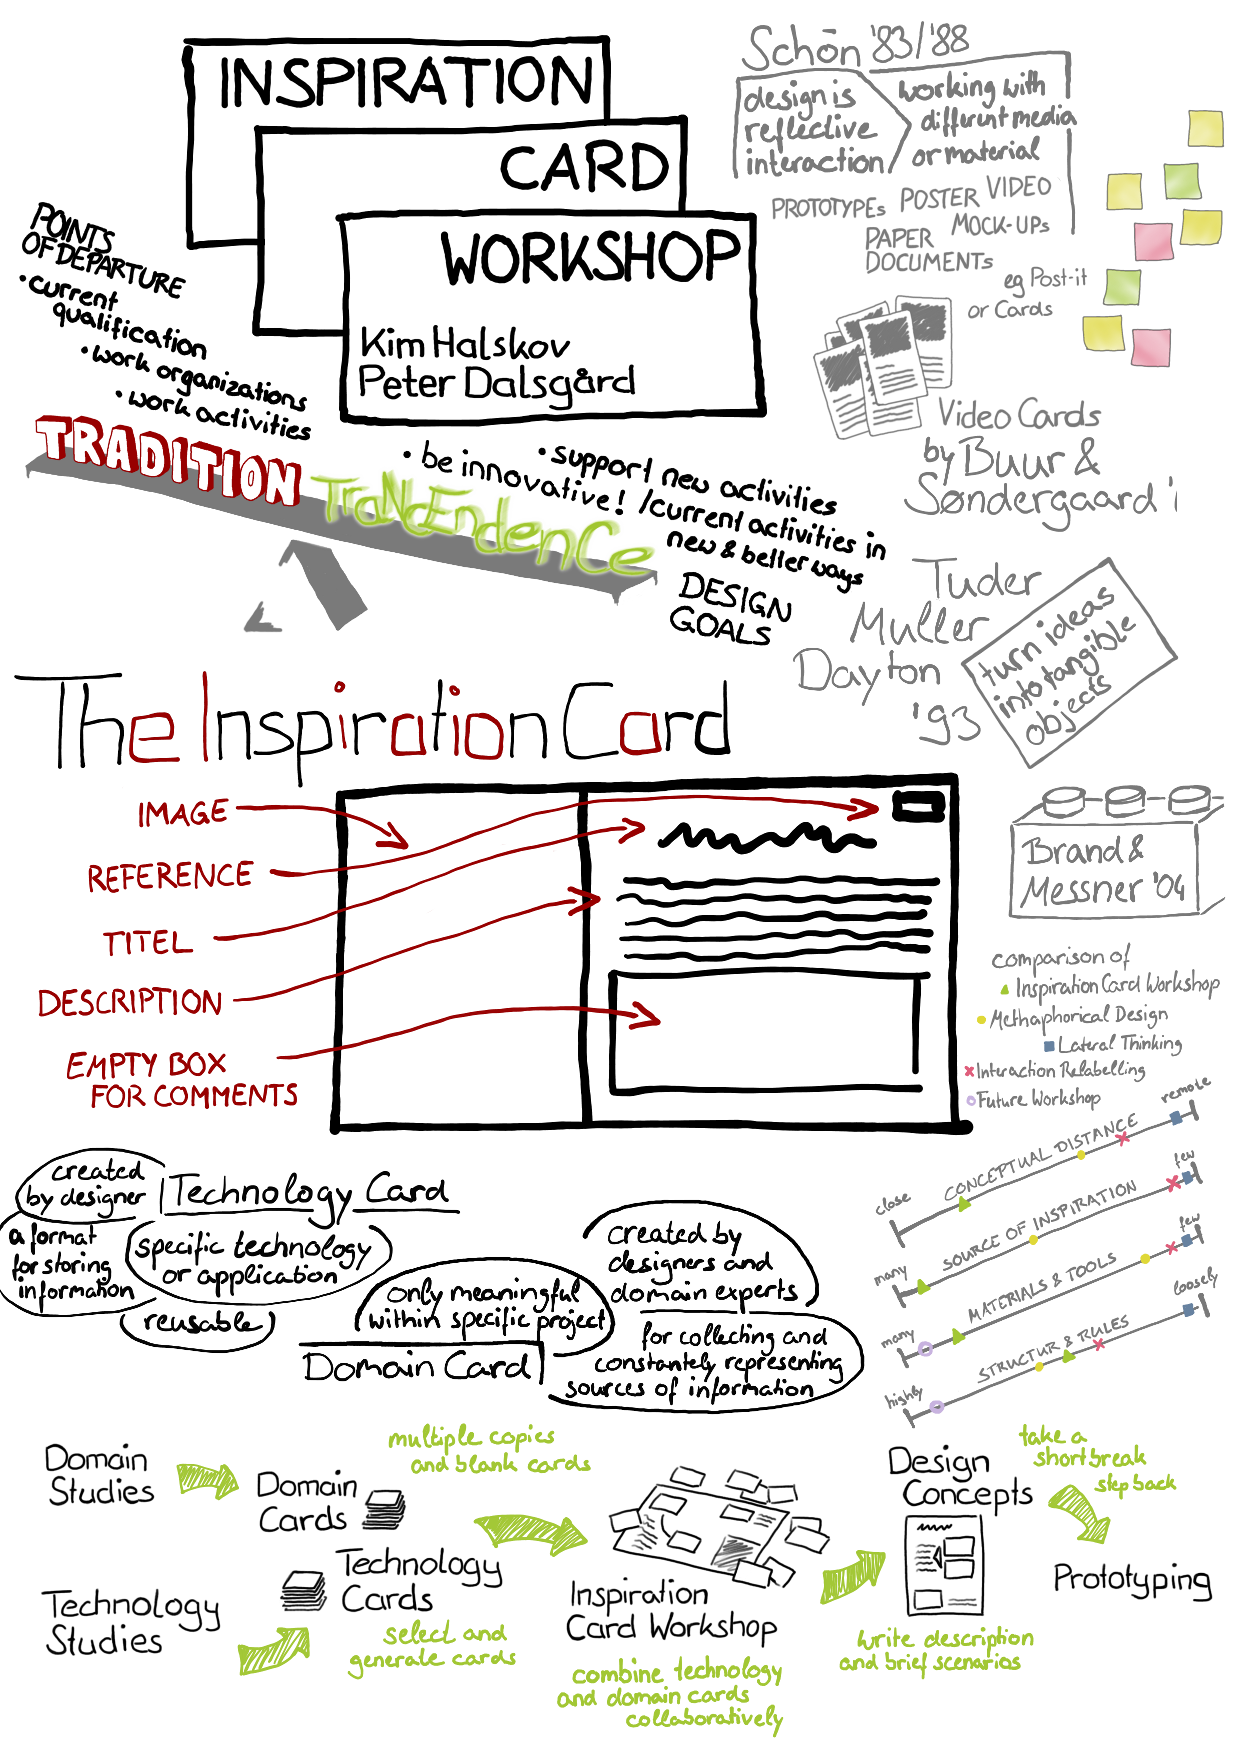 InspirationCardWorkshop_s